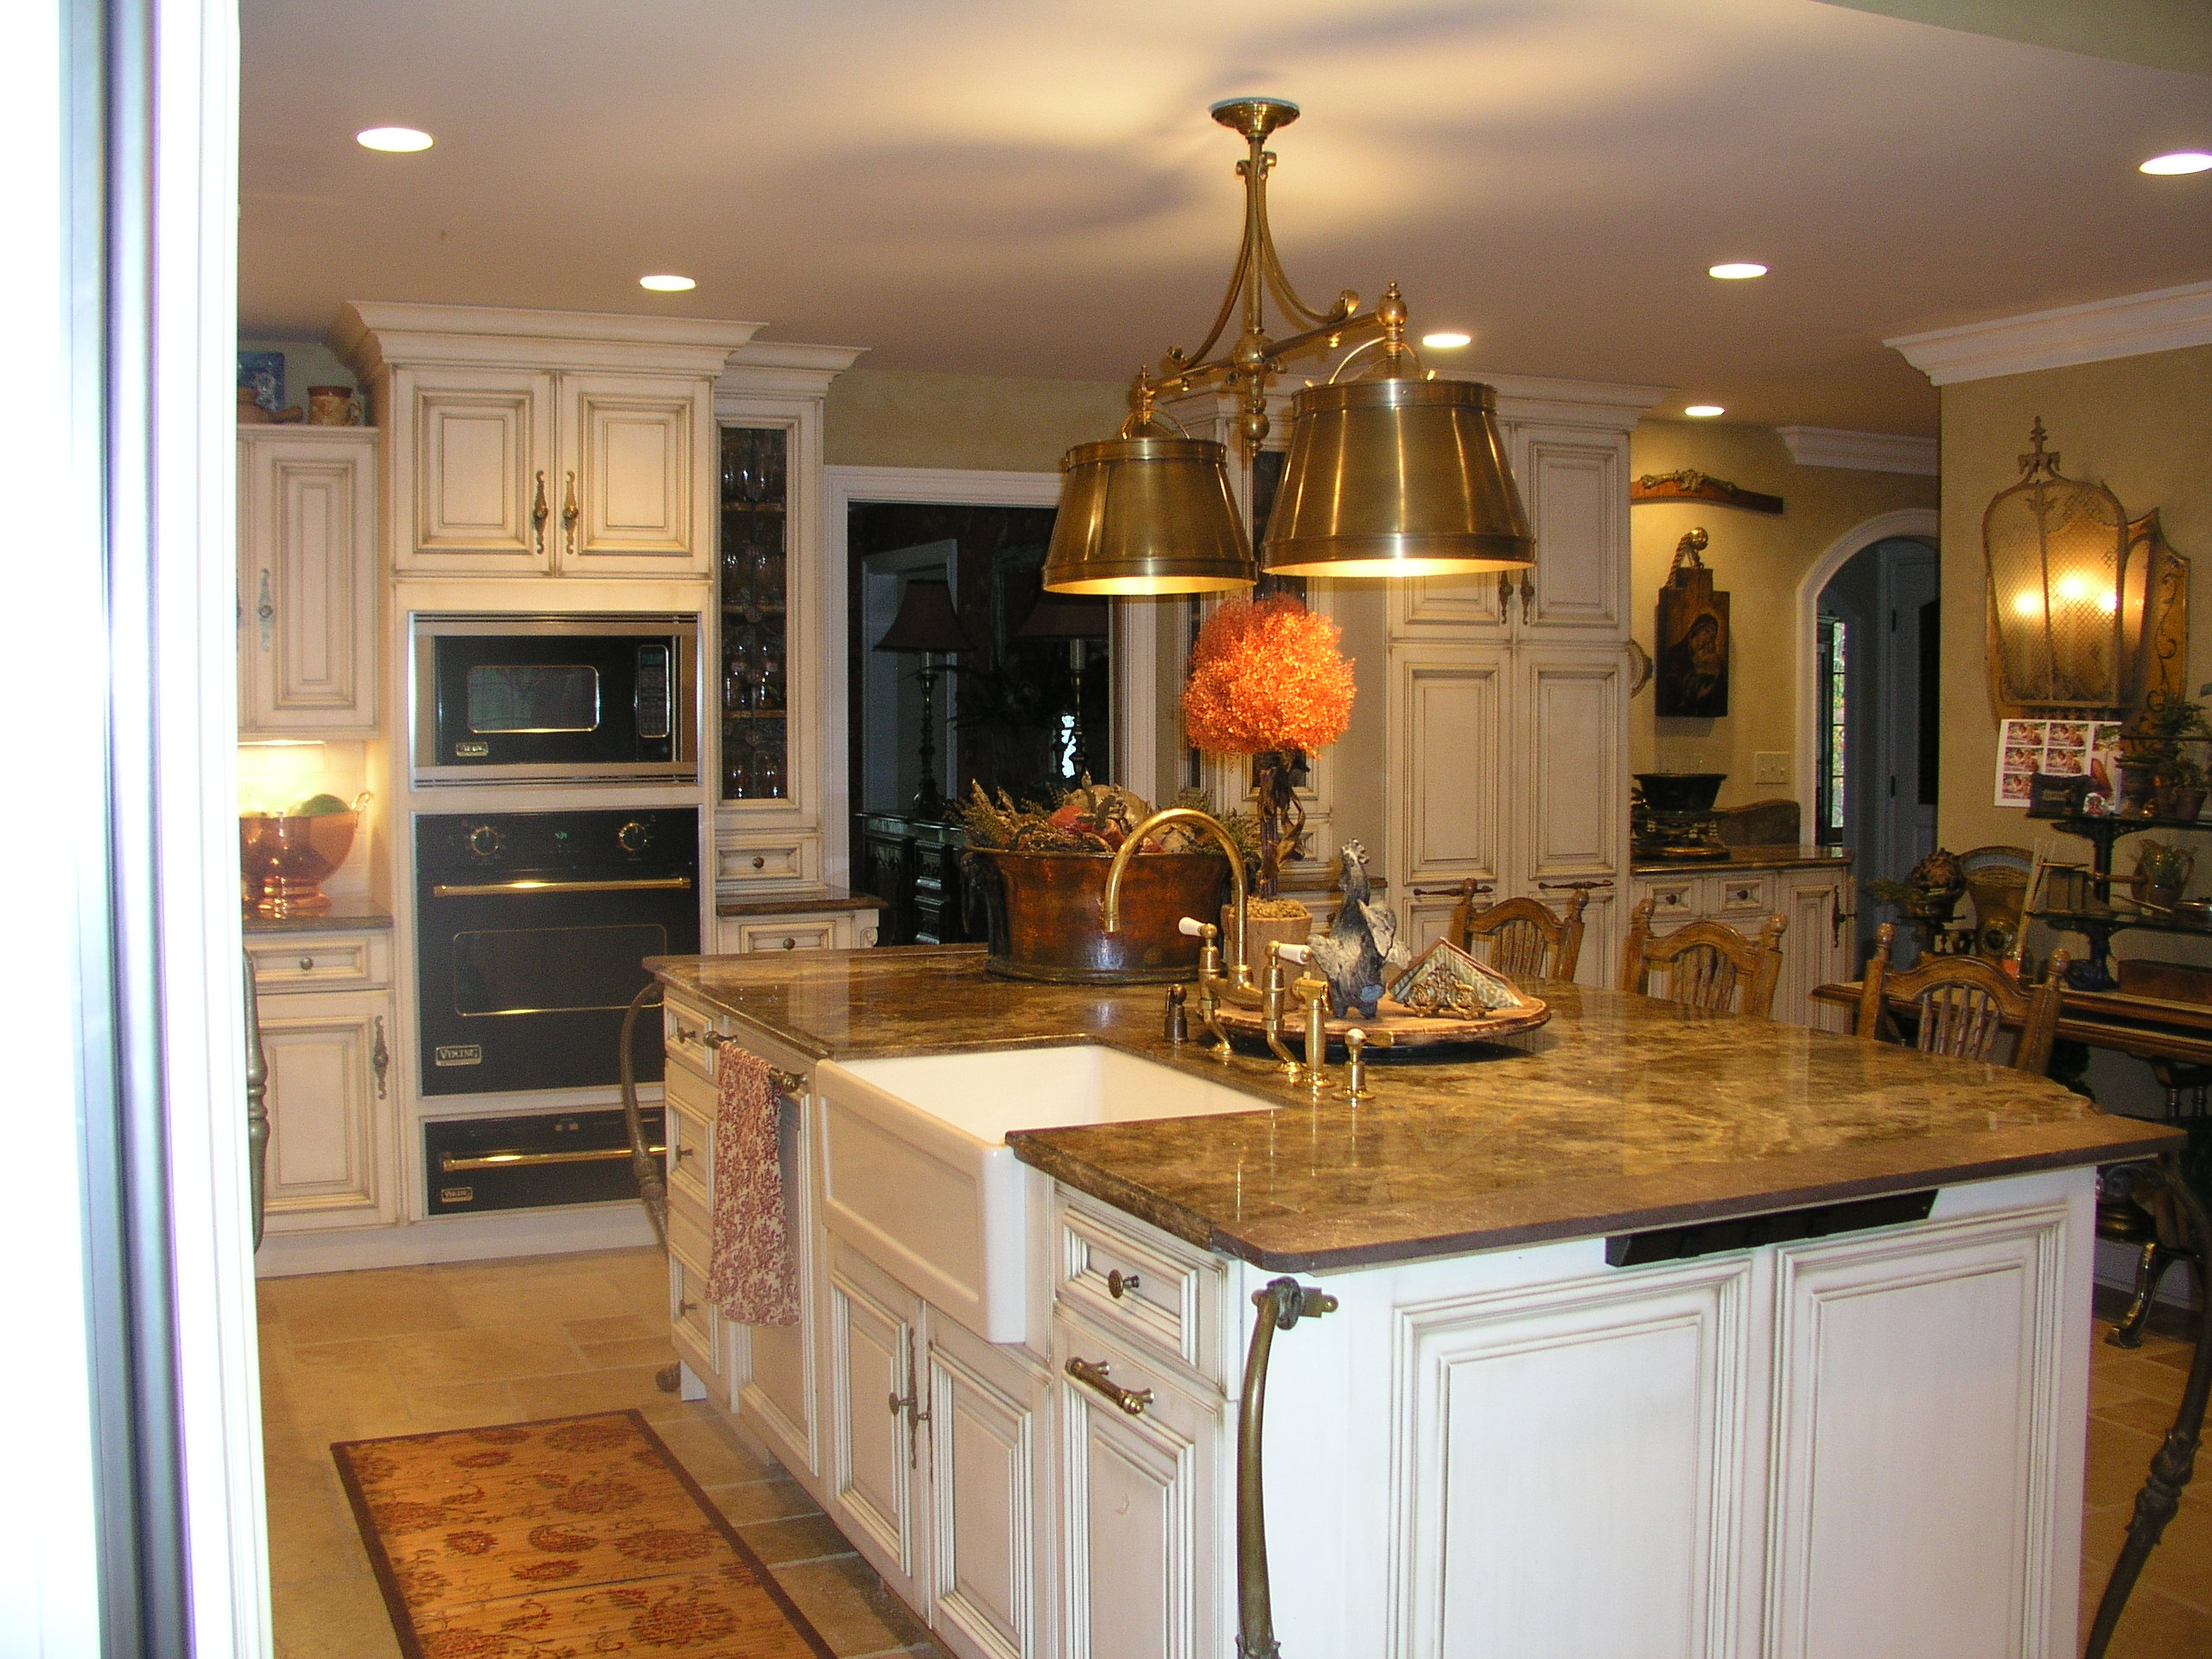 Kitchen Design Center Old World Kitchen In Woodbridge Ct Kitchen Design Center